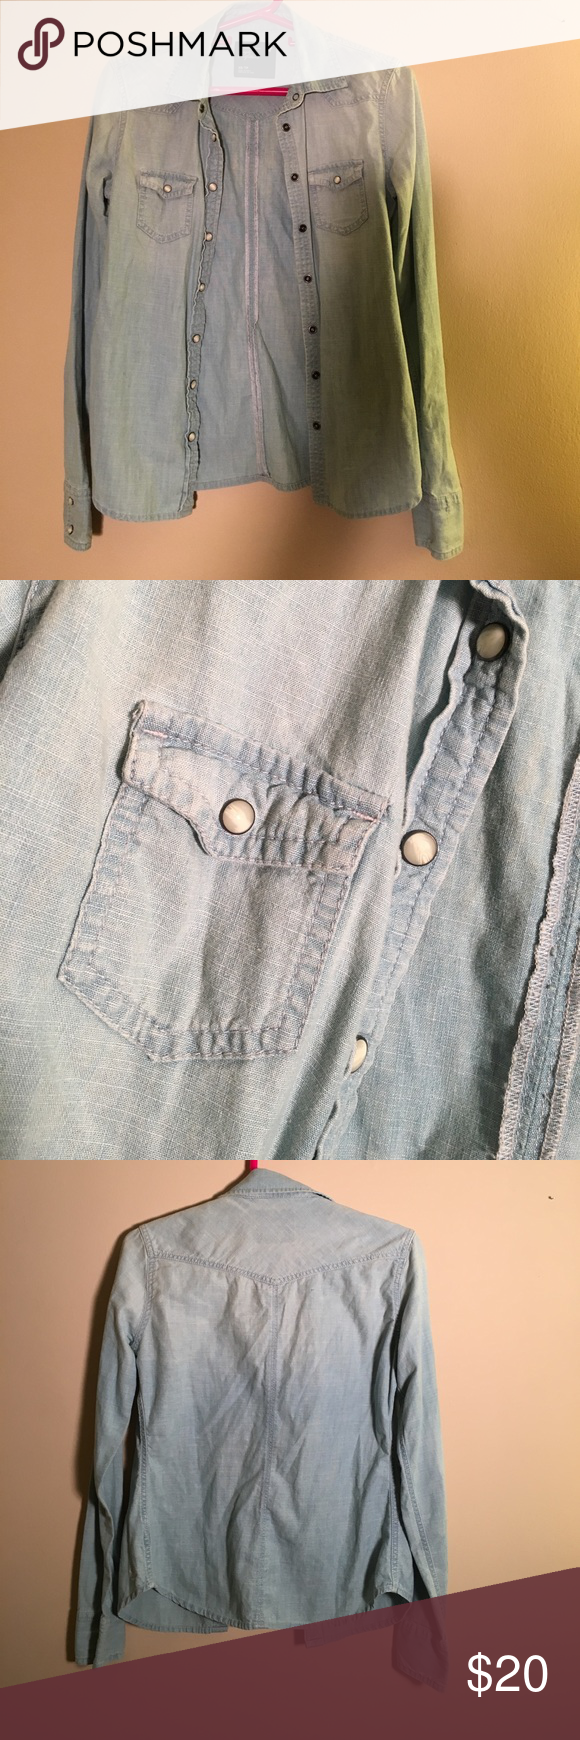 56d794f3bfa Light Blue Denim Shirt Pinterest - BCD Tofu House